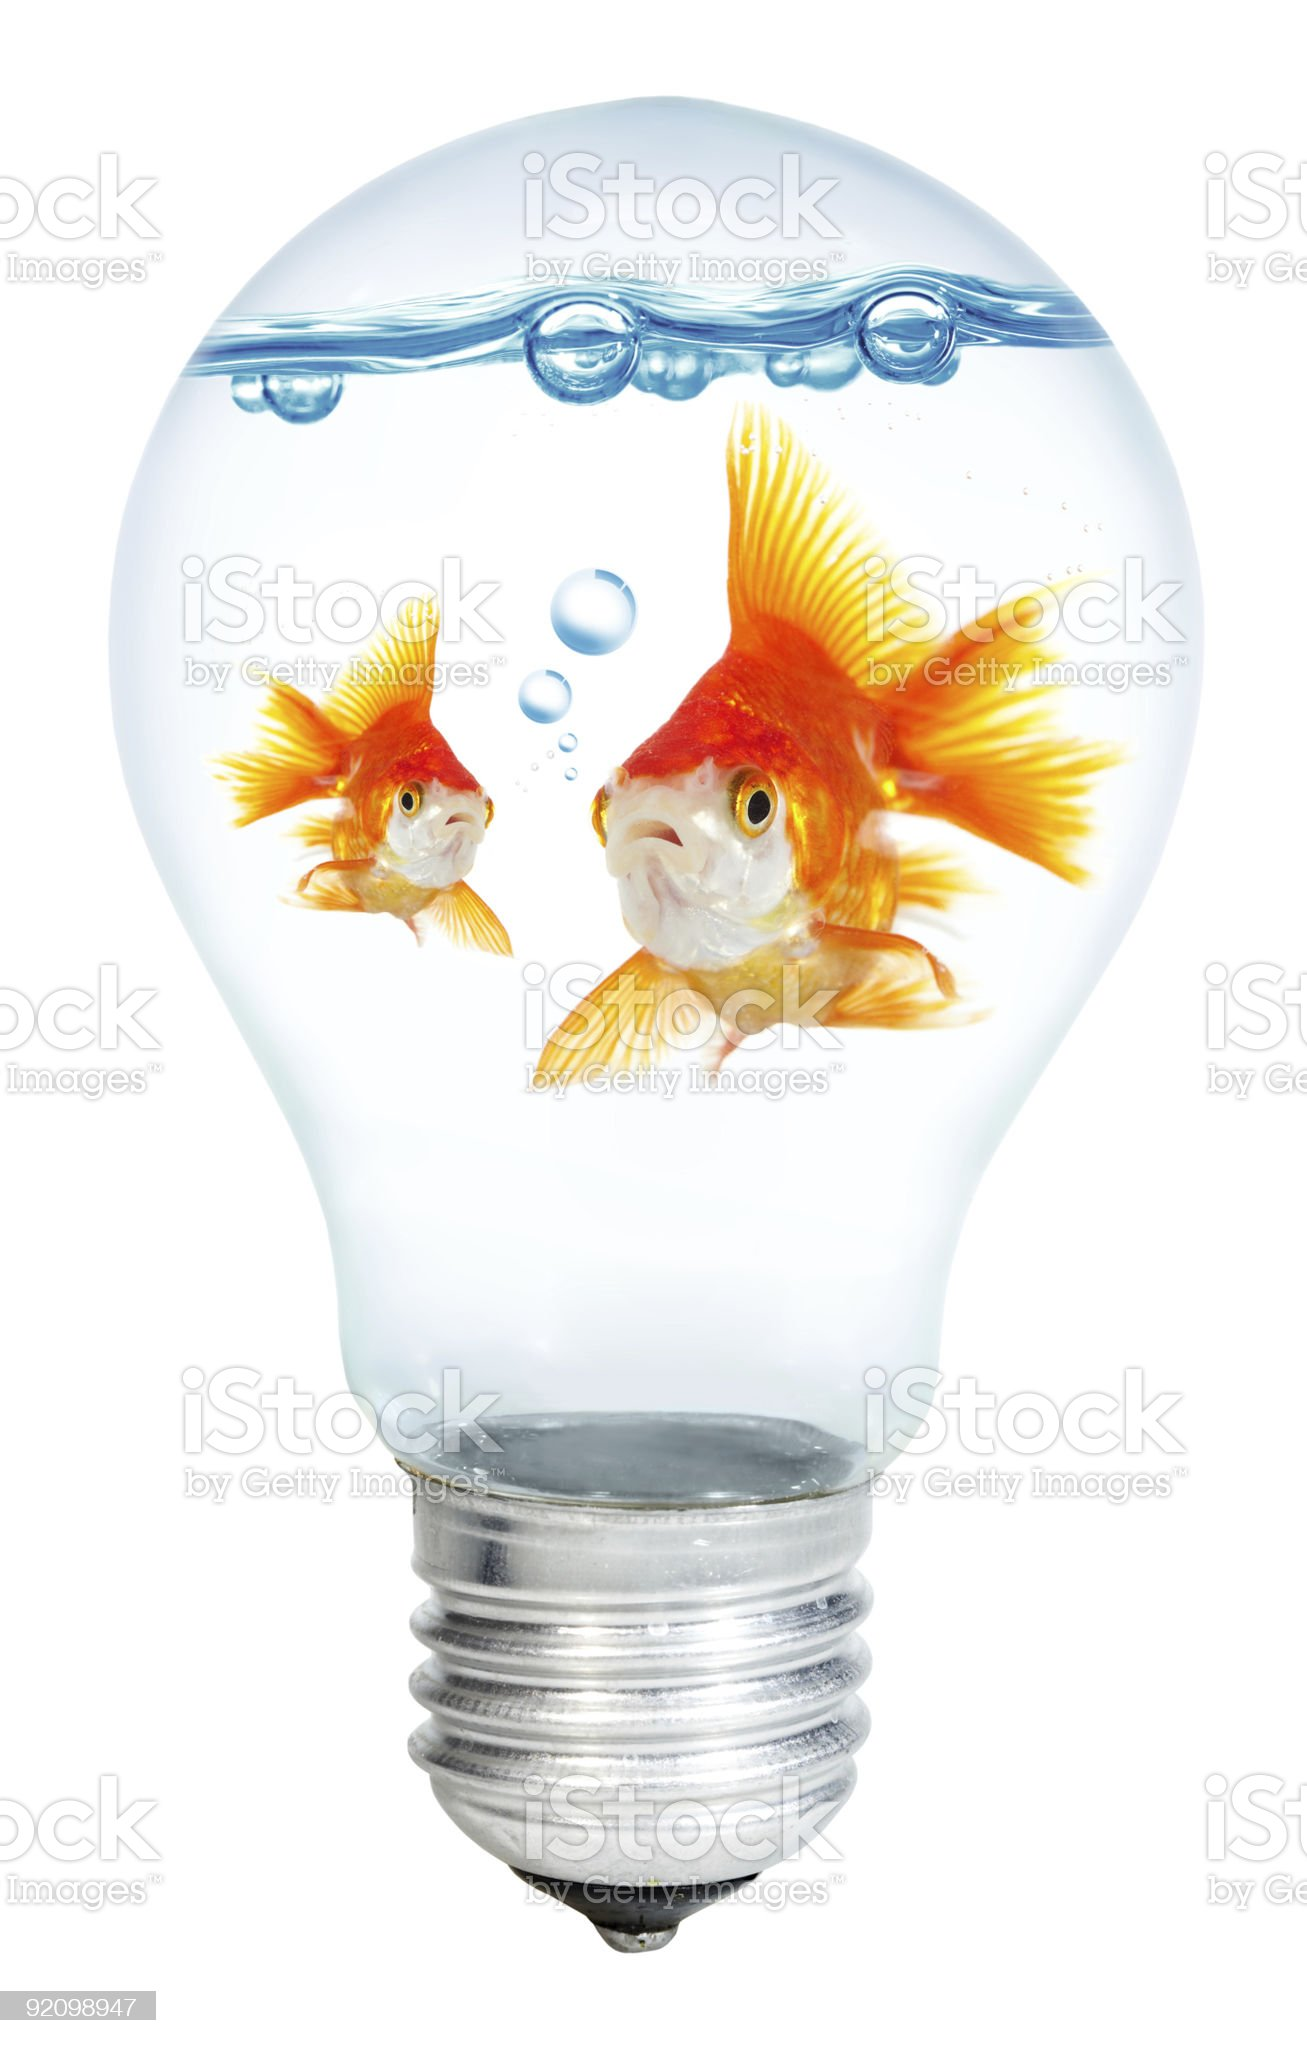 Gold small fish in light bulb royalty-free stock photo